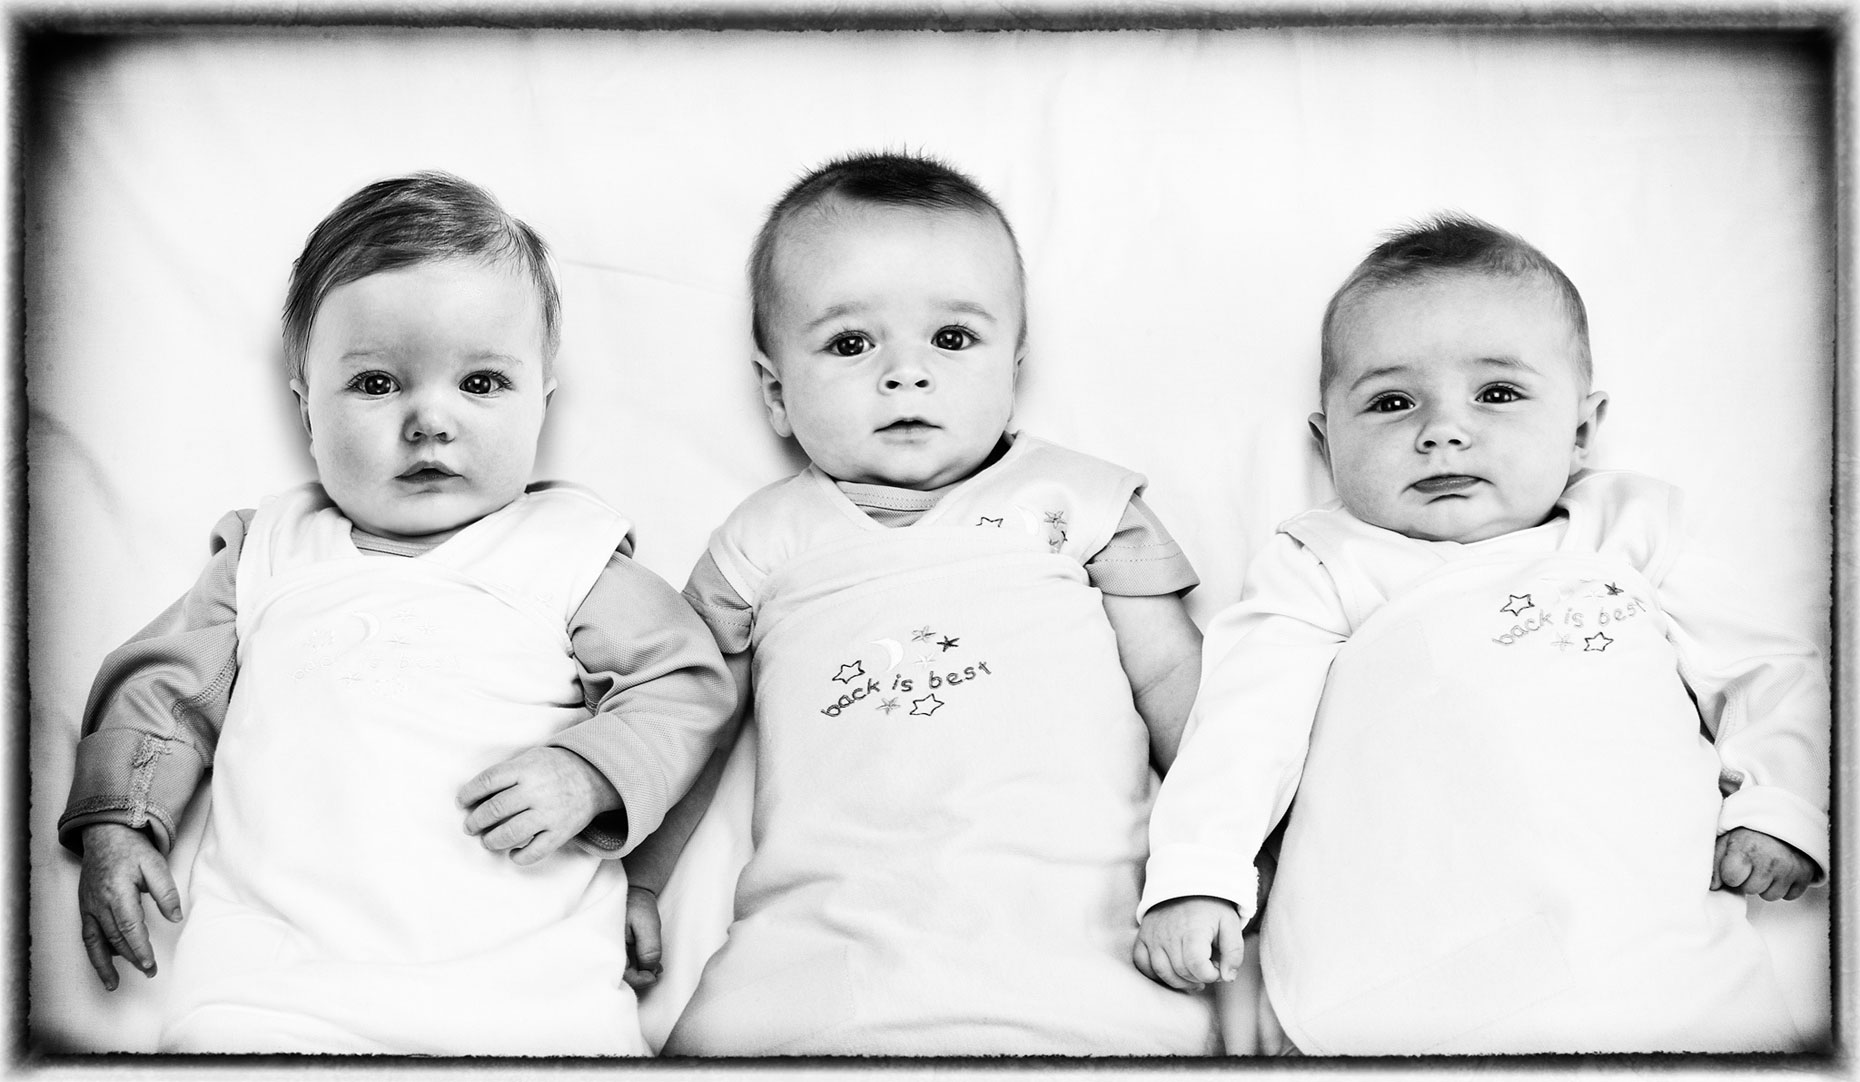 Halo/babies in a row/laying down/lifestyle photography